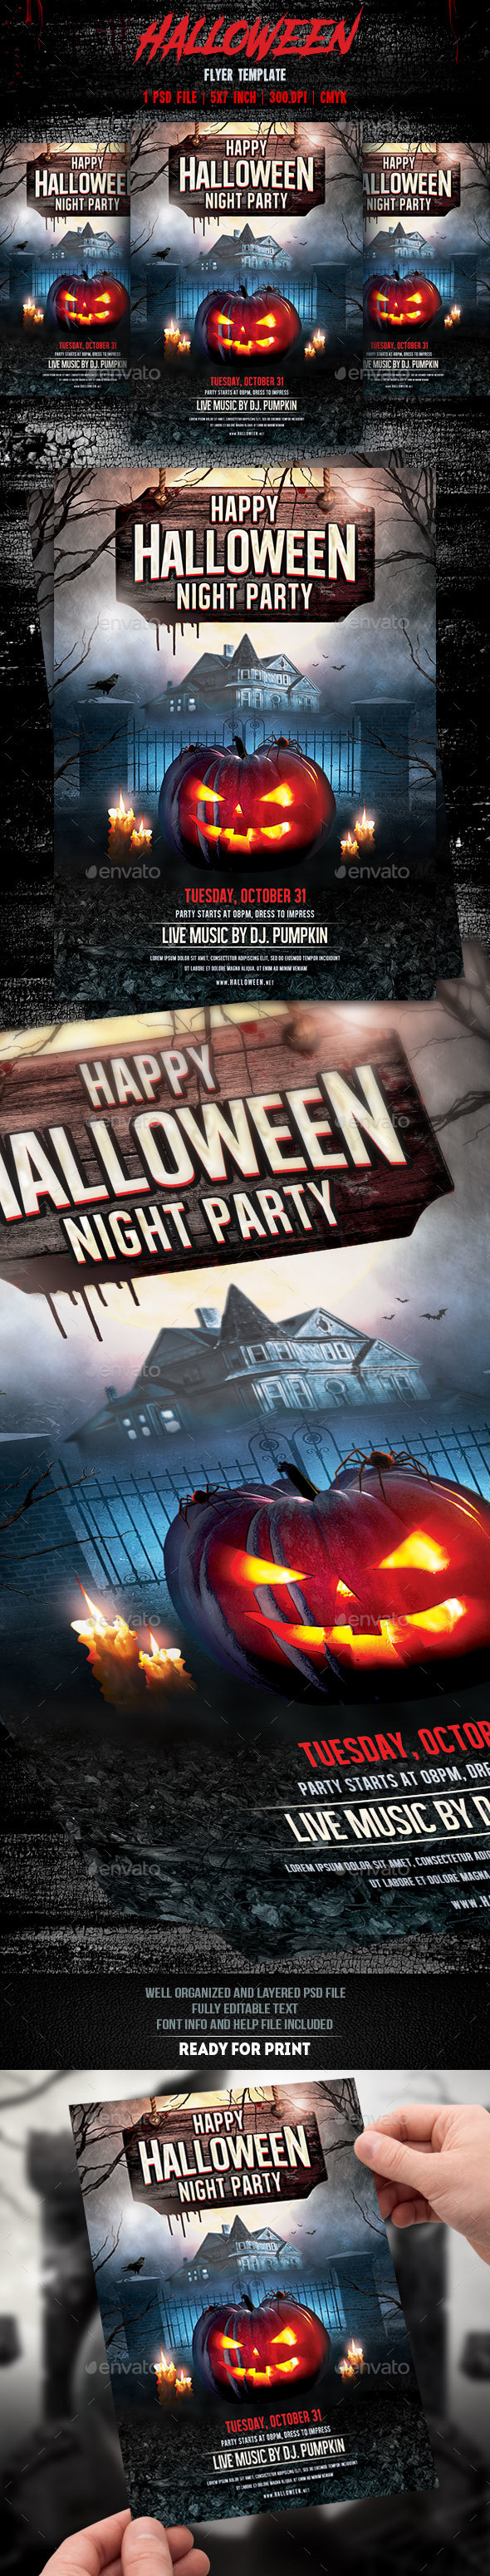 Halloween Party Flyer Template v3 - Events Flyers